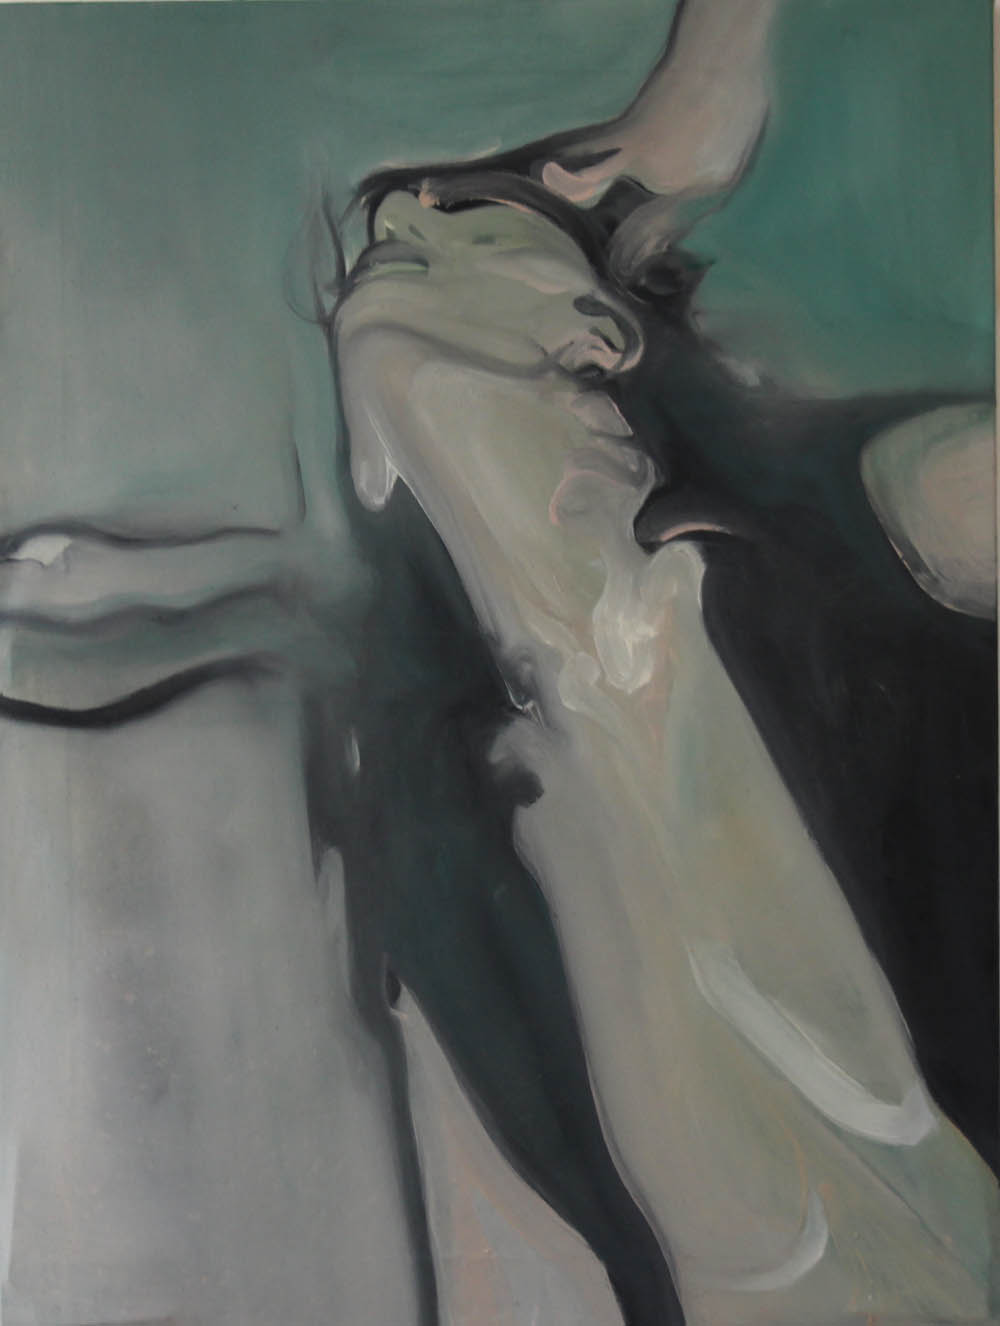 Bel-Ami or Peacock giving head, 2017, oil on canvas, 61 x 46 cm